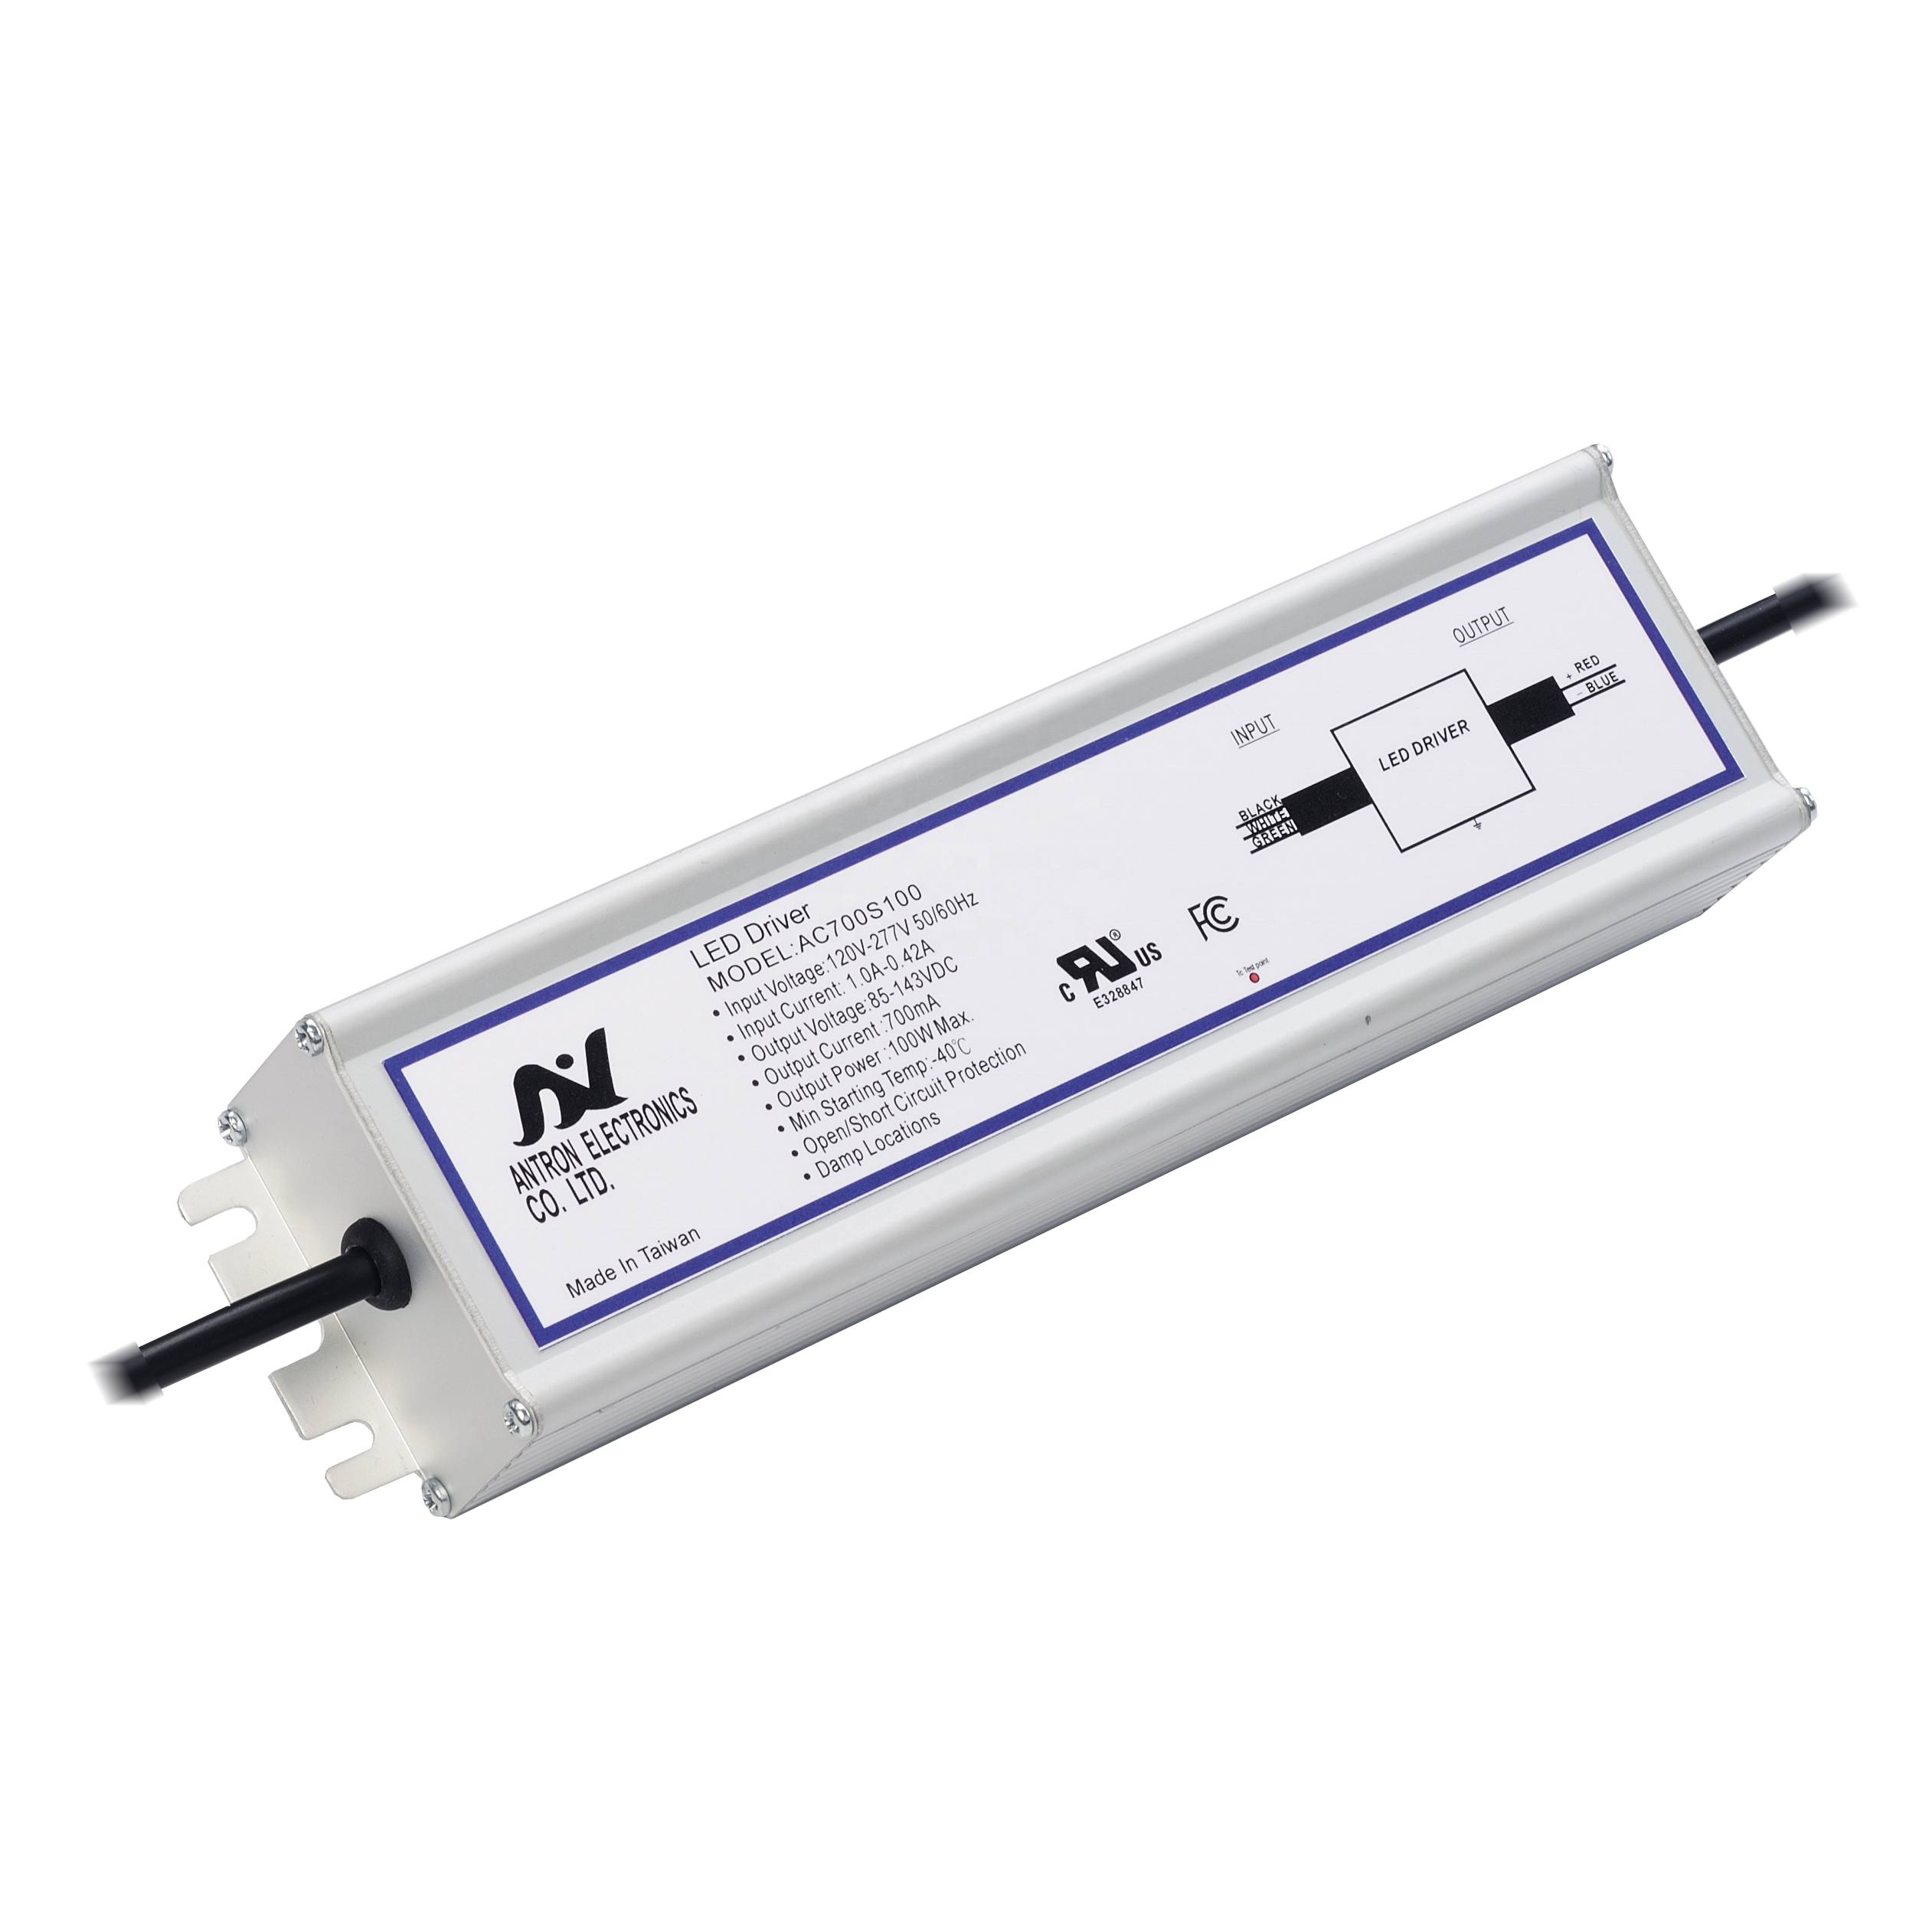 91W IP67 LED Power Supply for Outdoor Flood Light